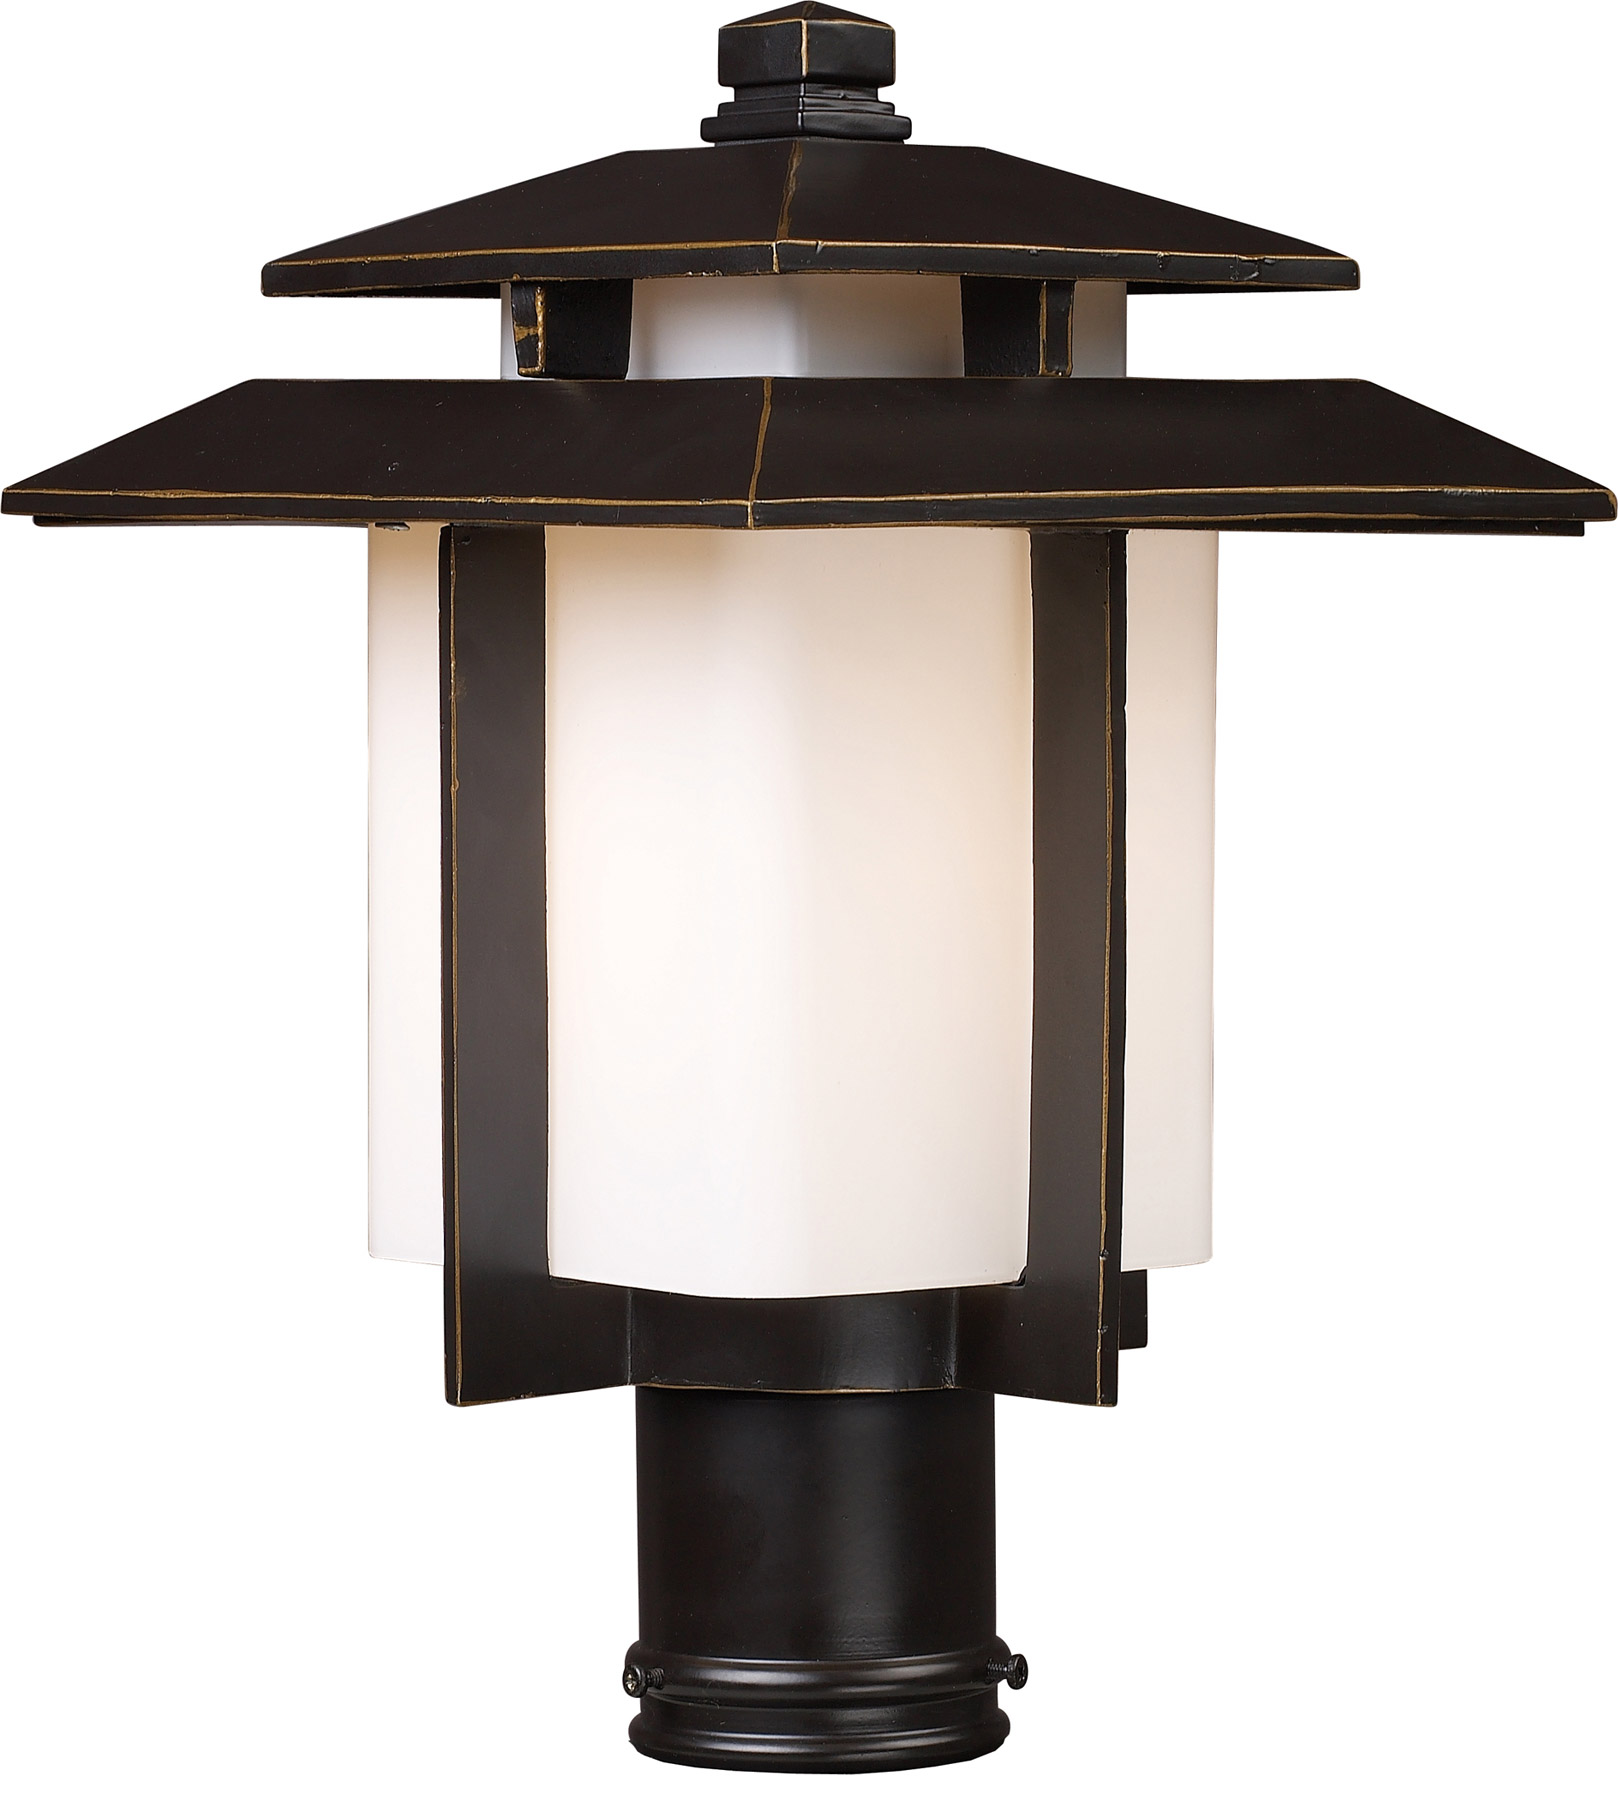 Elk lighting 42173 1 kanso outdoor post mount fixture for Outdoor home lighting fixtures